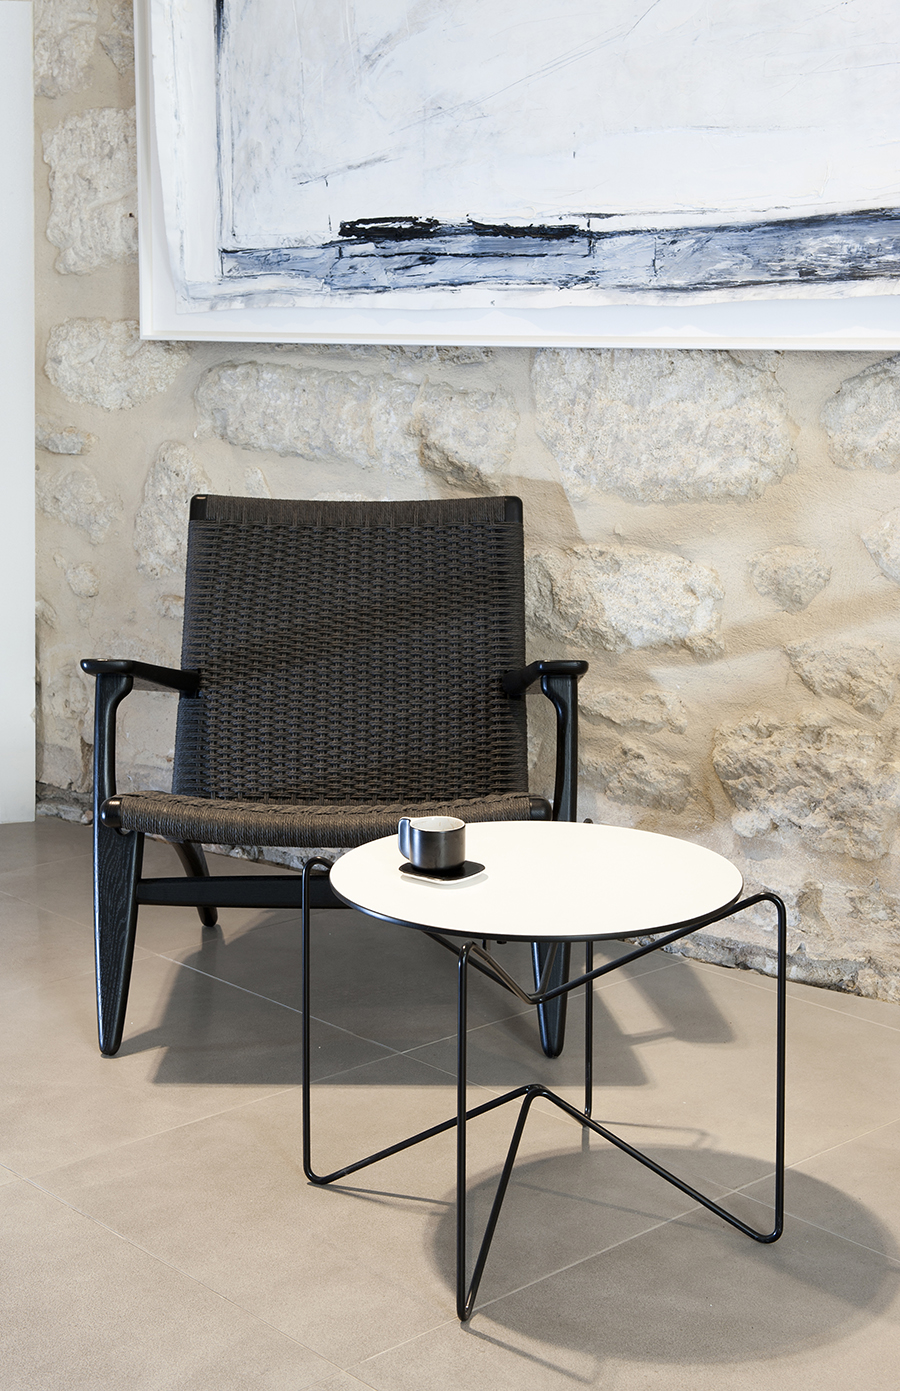 gallix_fauteuil_de_salon_table_basse_mobilier